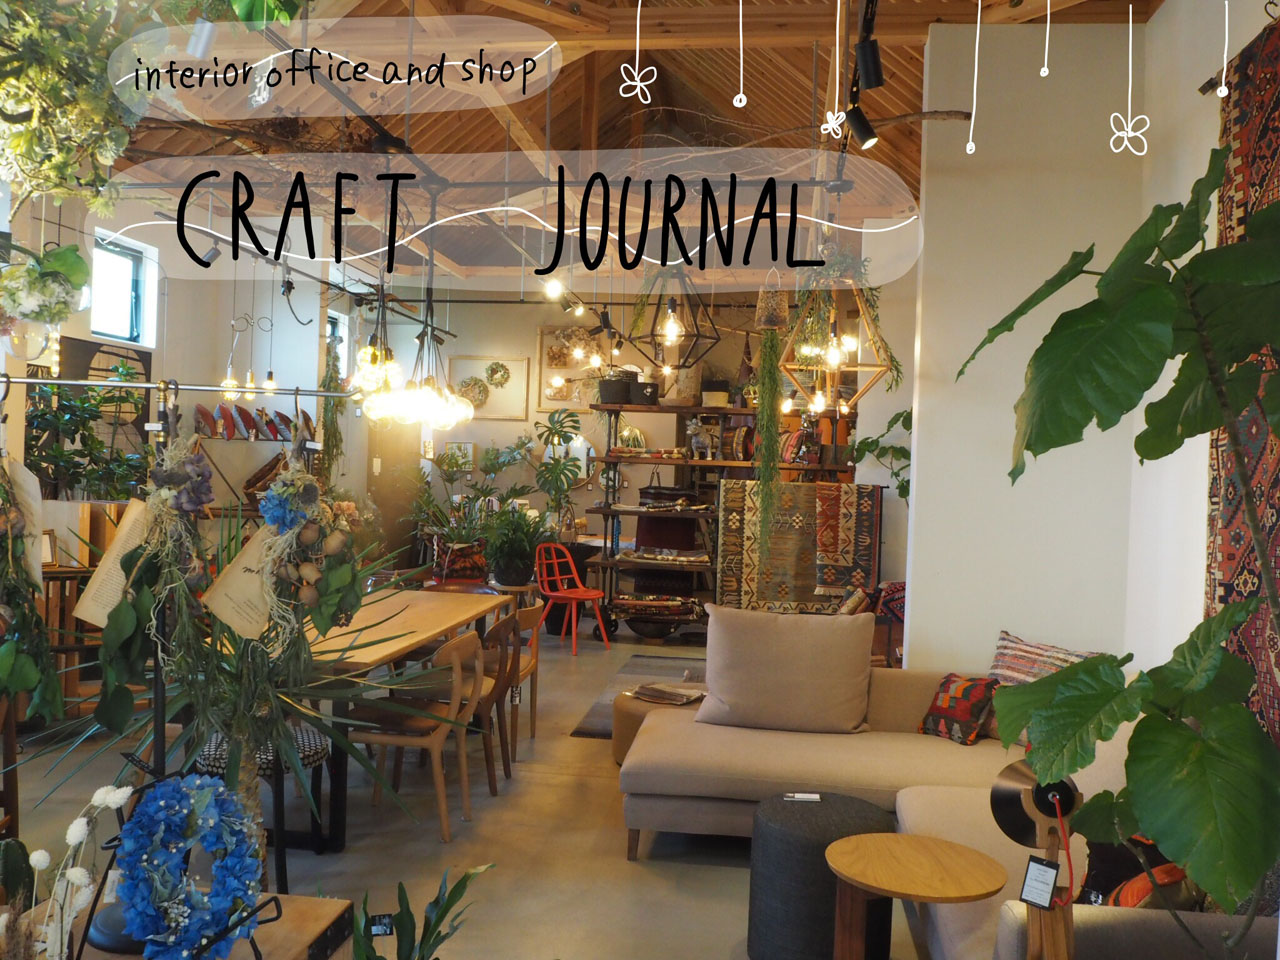 interior office and shop CRAFT JOURNAL